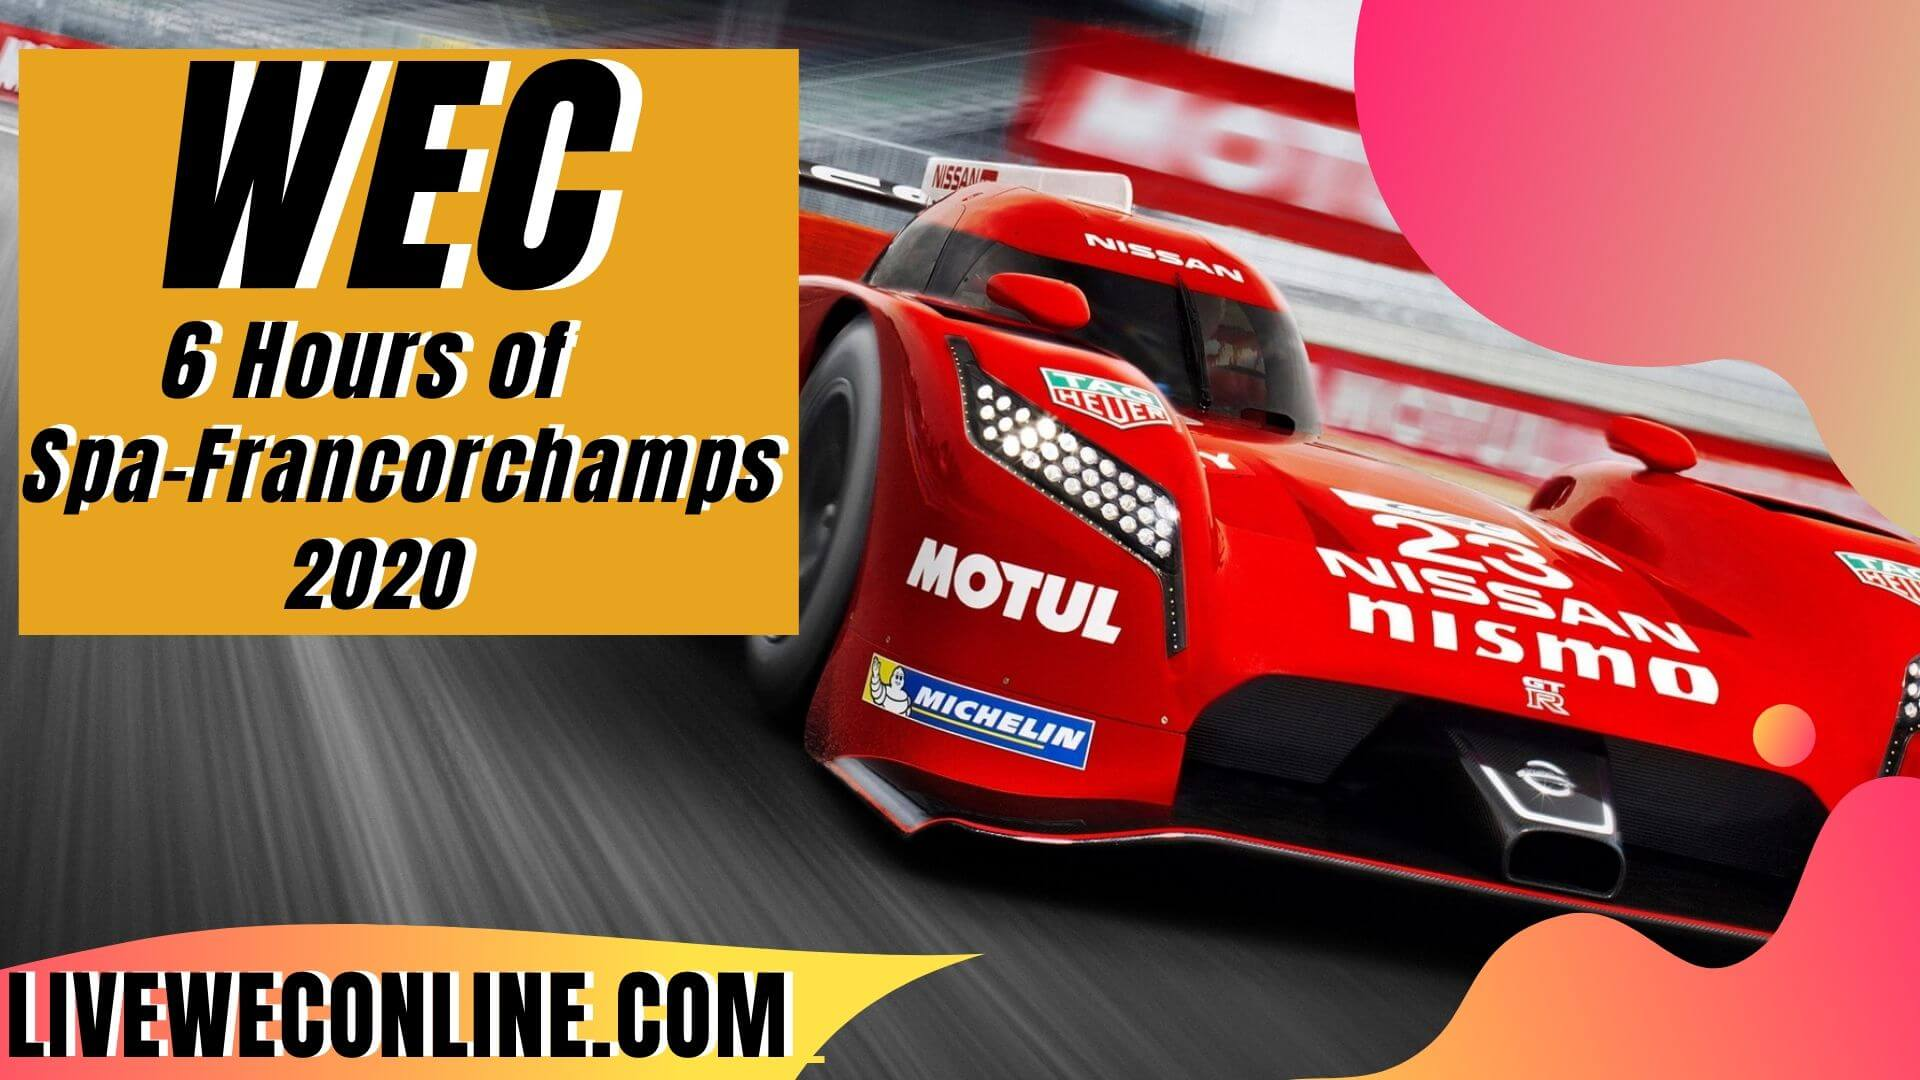 WEC Total 6 Hours of Spa Francorchamps Live stream